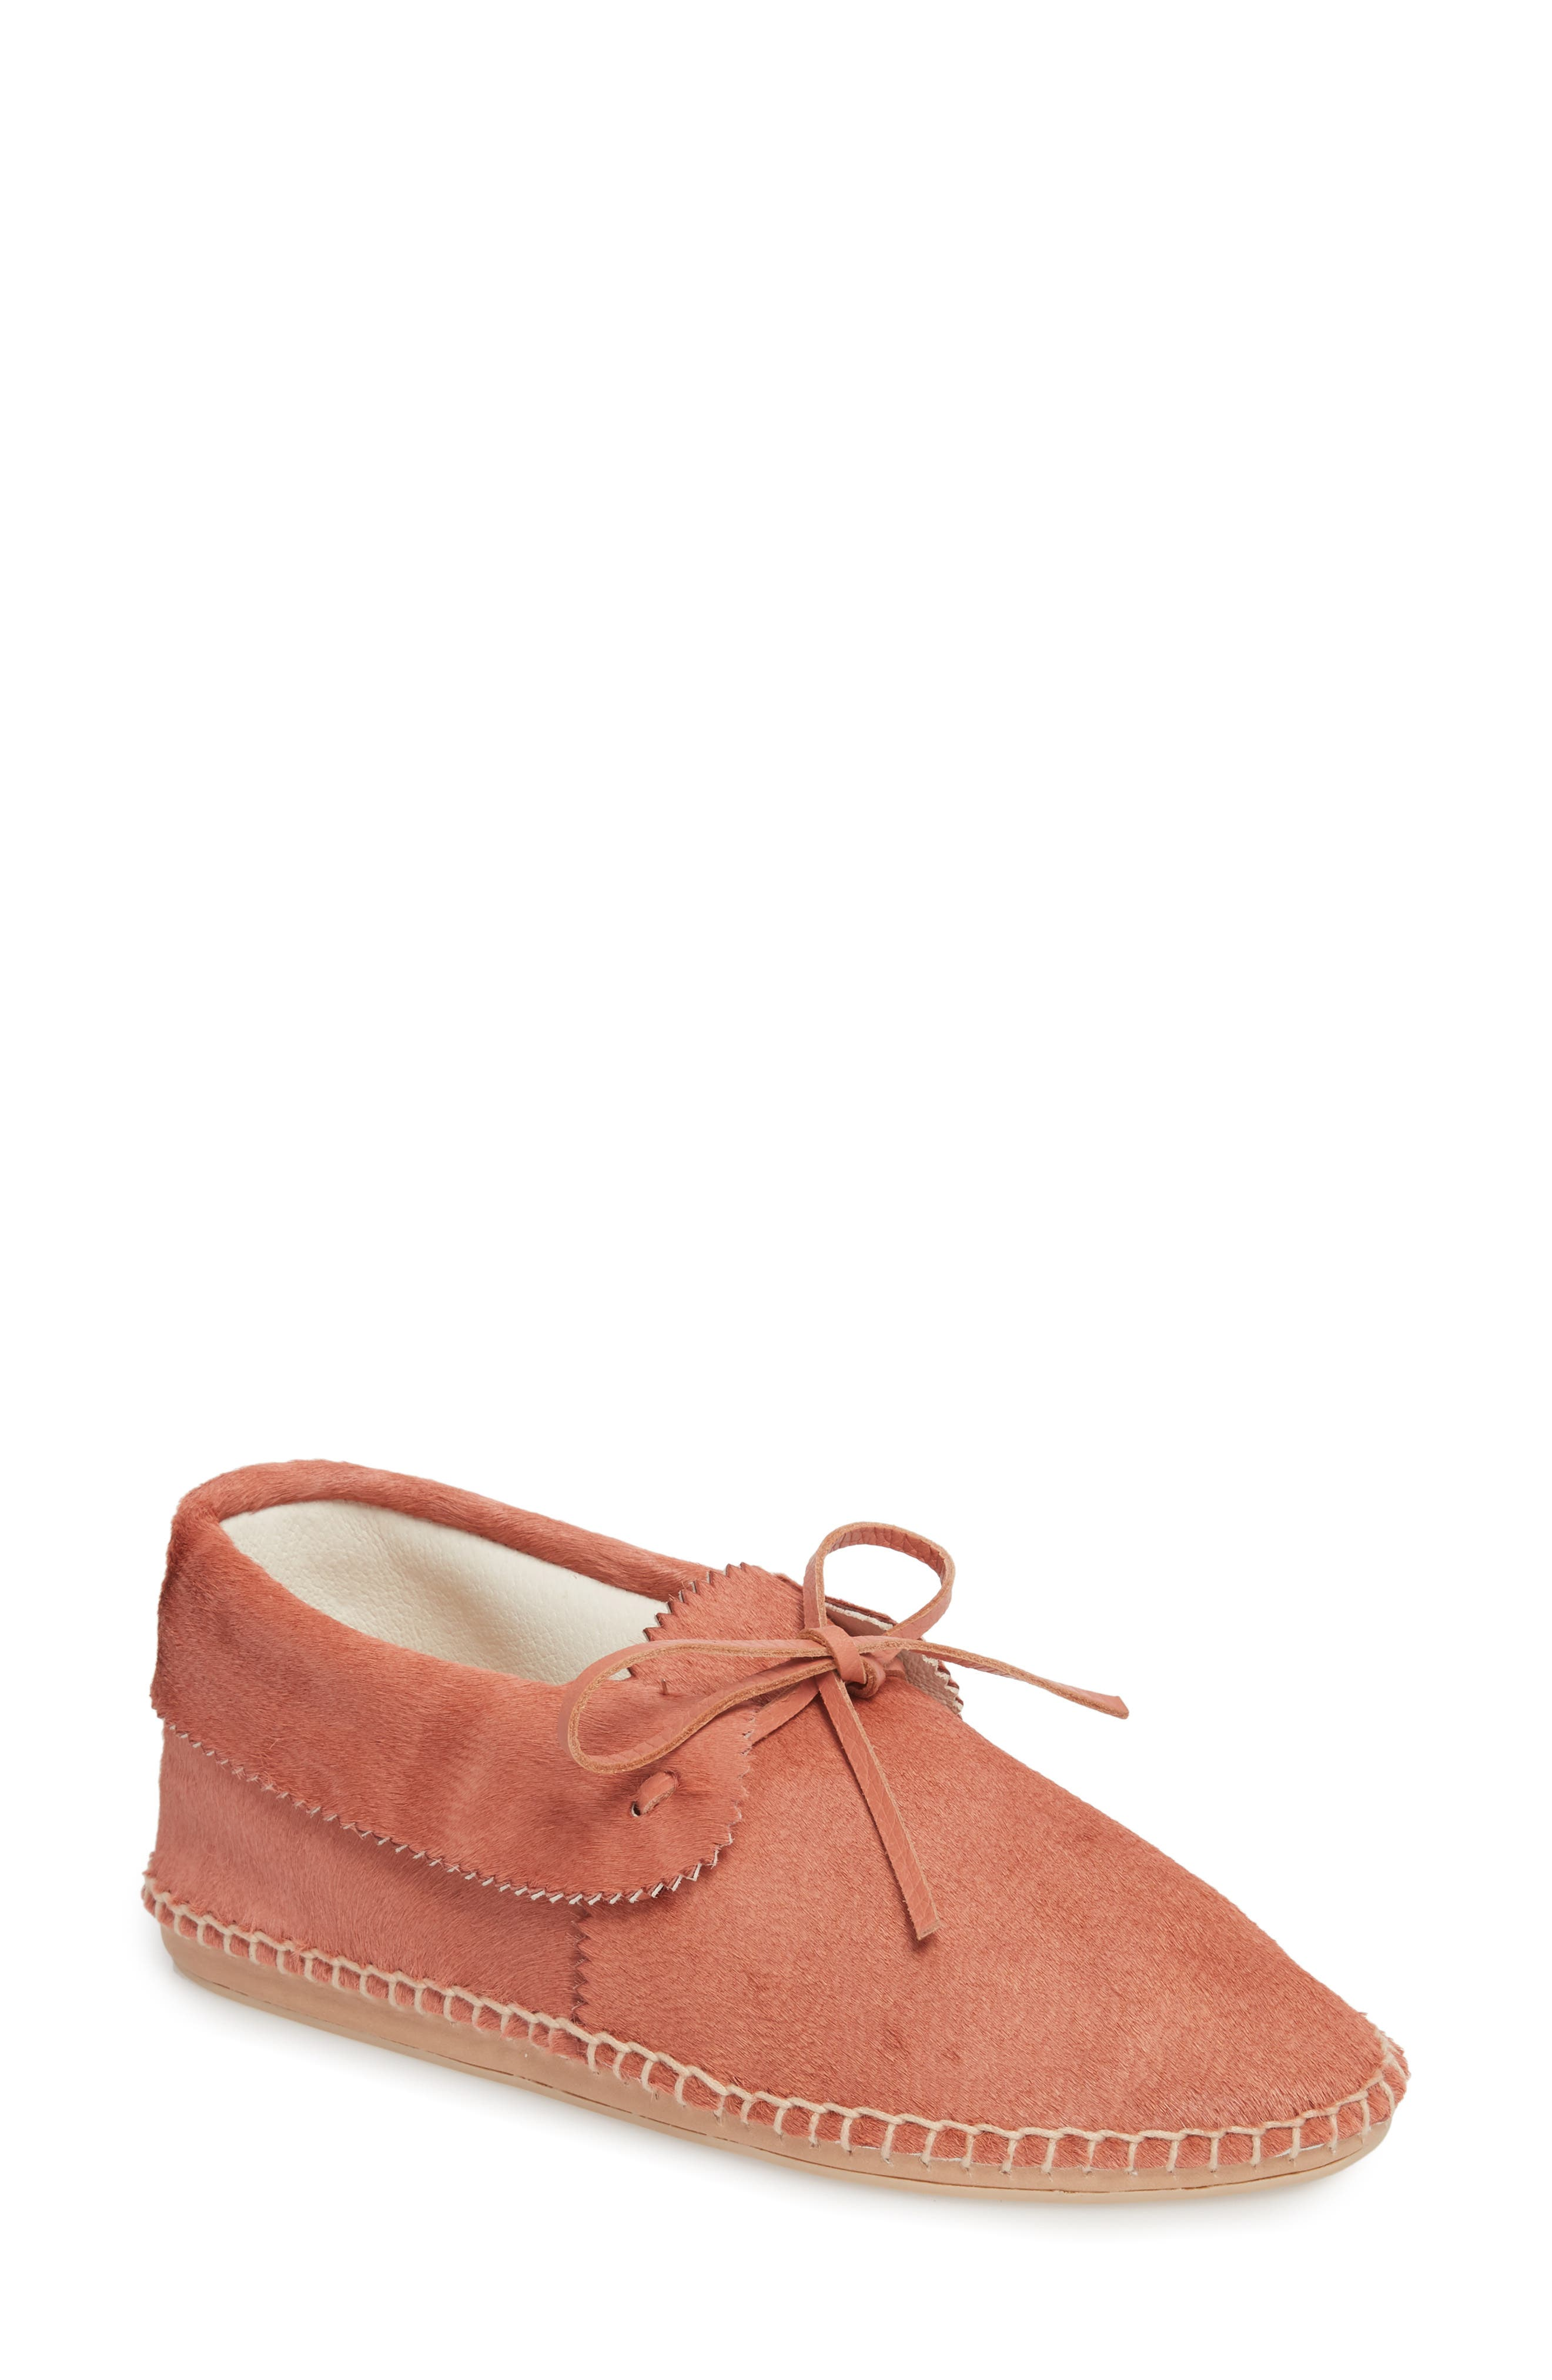 Canyon Moccasin Flat,                         Main,                         color, DUSTY ROSE